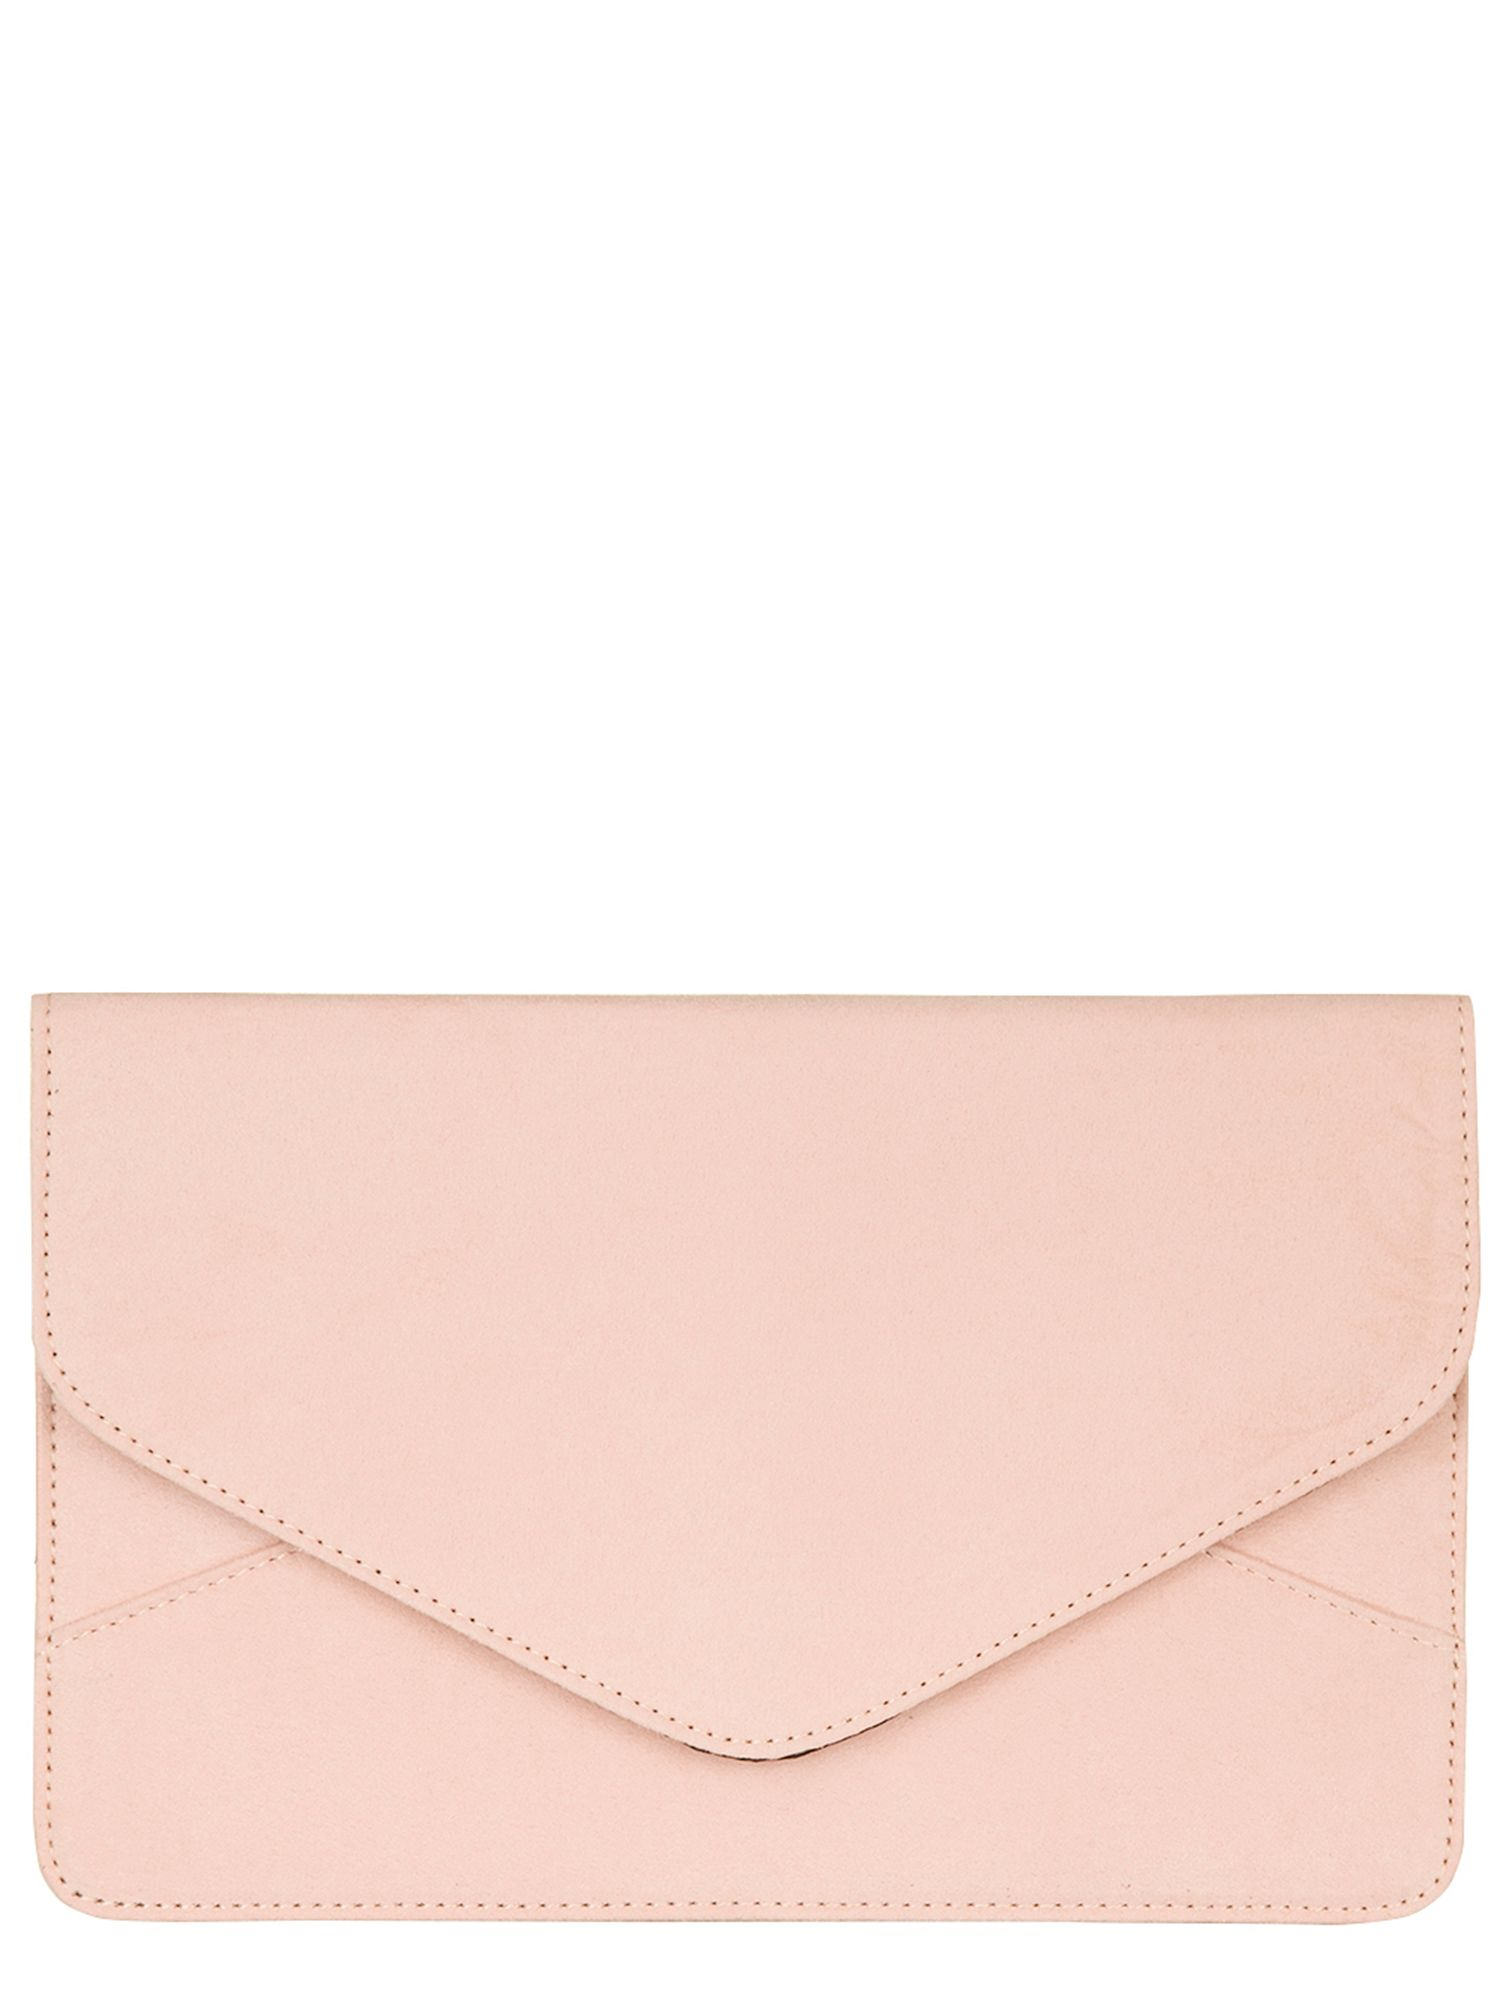 Coral suede envelope clutch